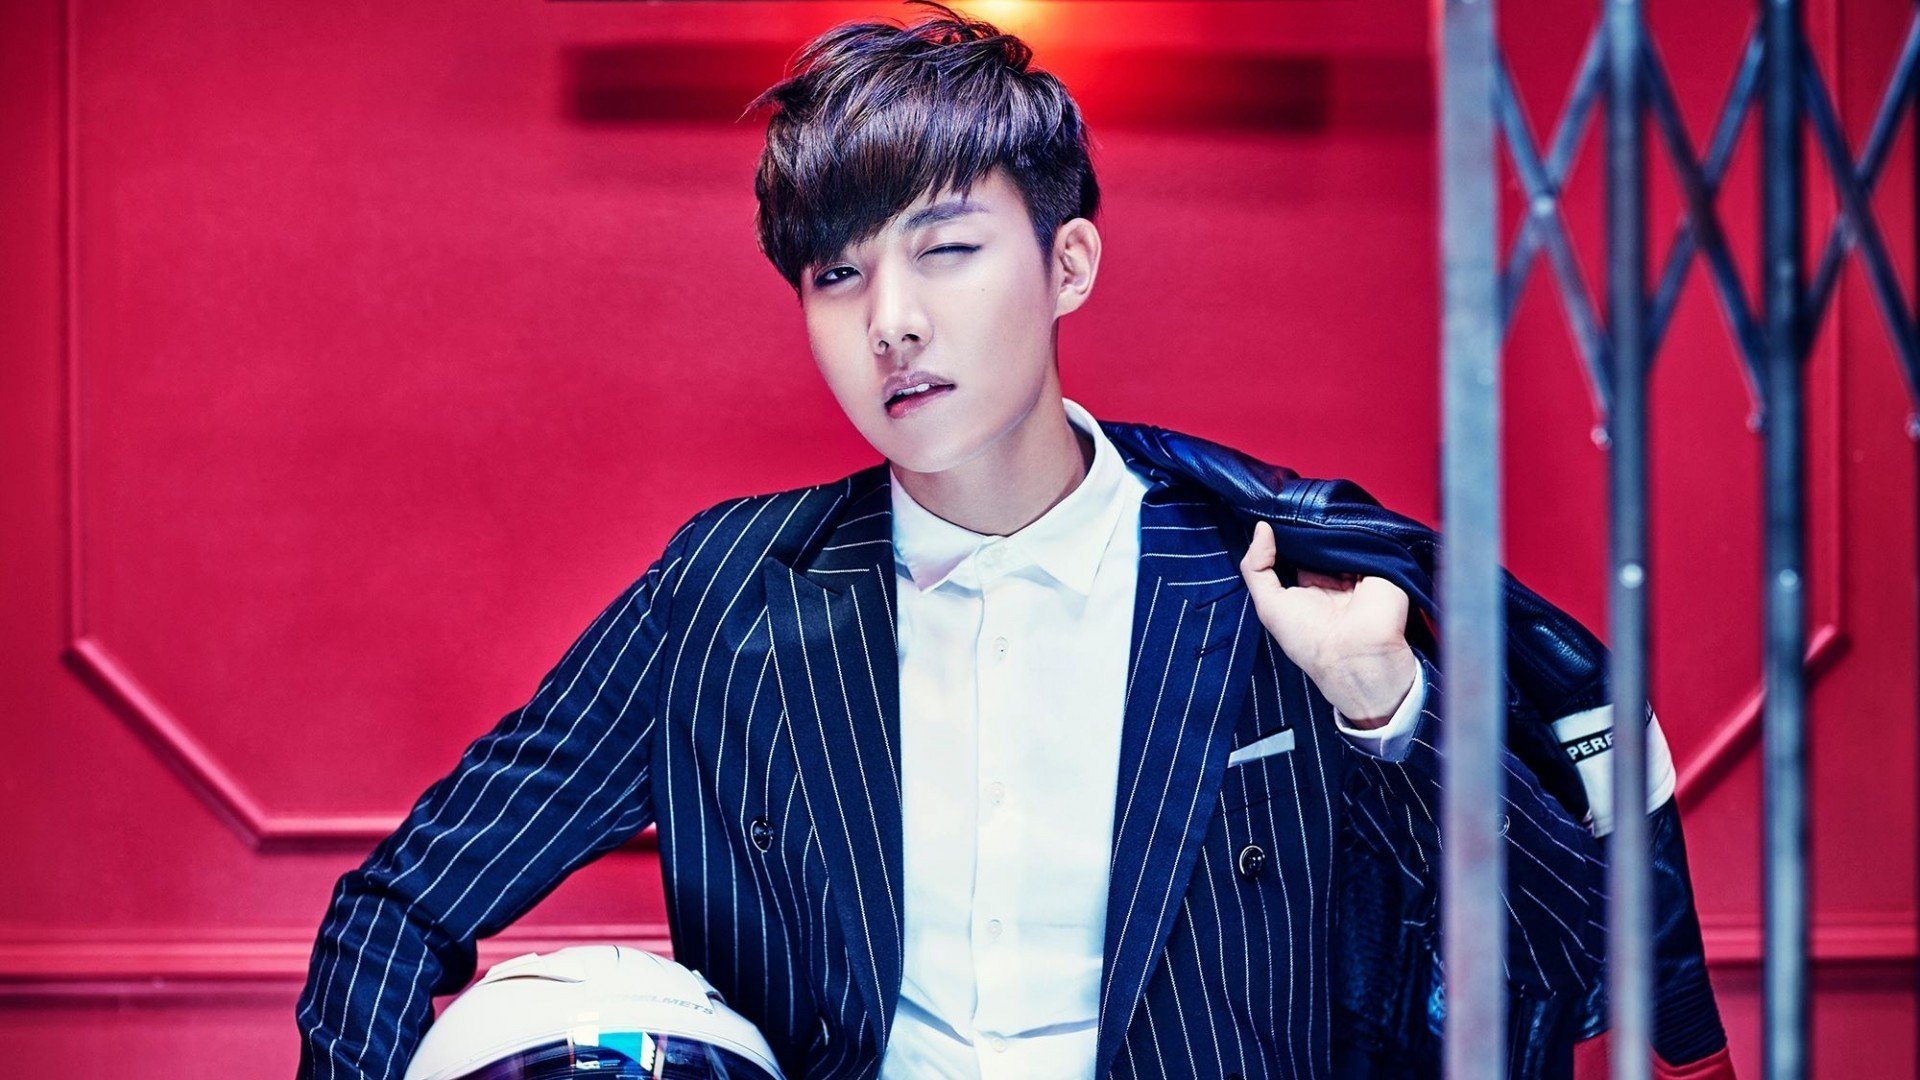 1920x1080 J-hope, Bts, South Korean Singer, Bangtan Boys